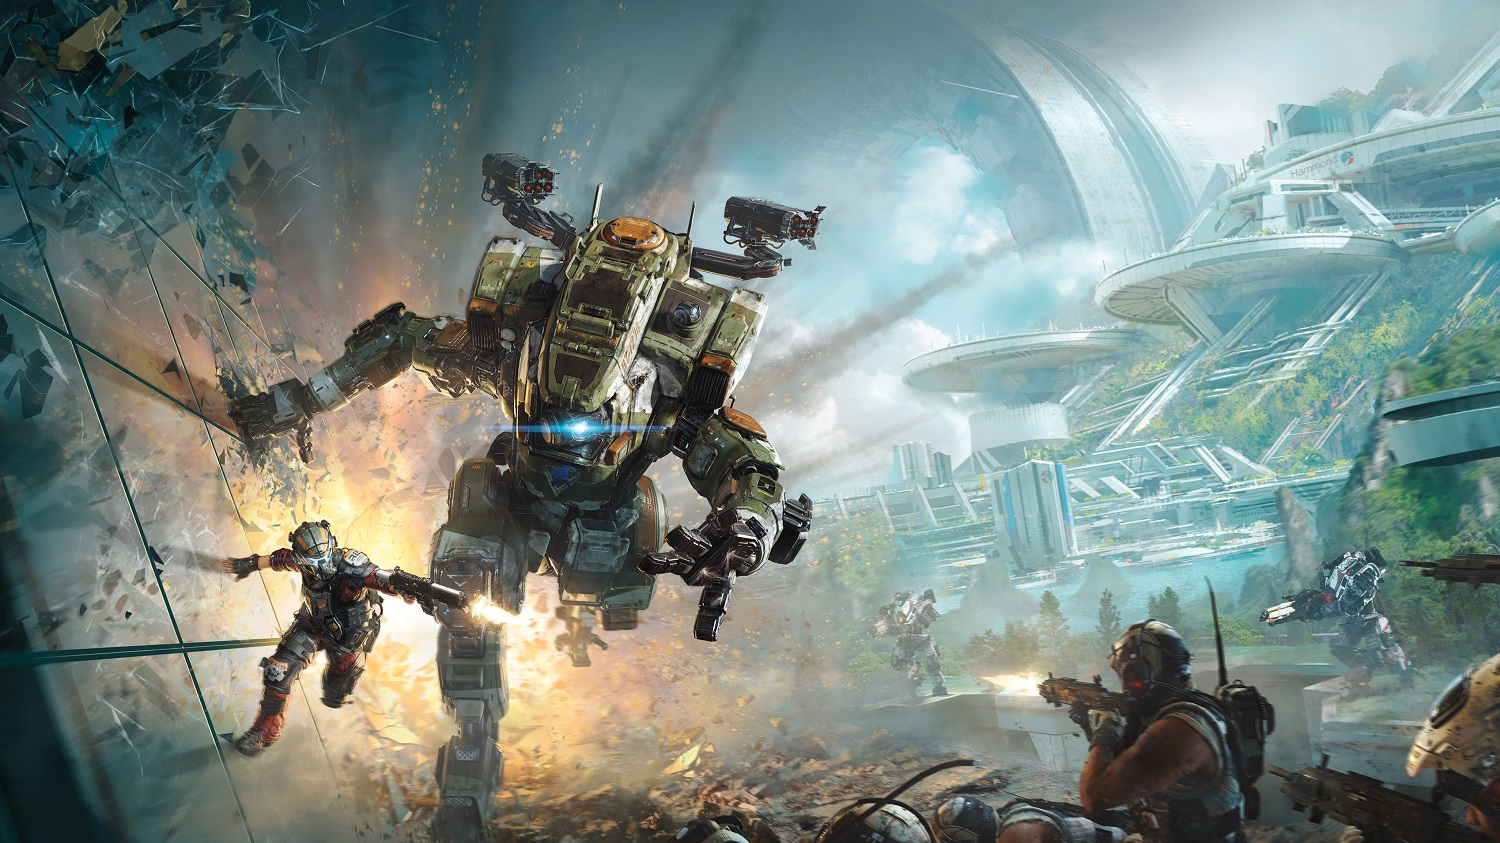 Titanfall 2 promotional artwork -- Jason Garza says the remaining Respawn Entertainment Titanfall team consists of 'one or two' people